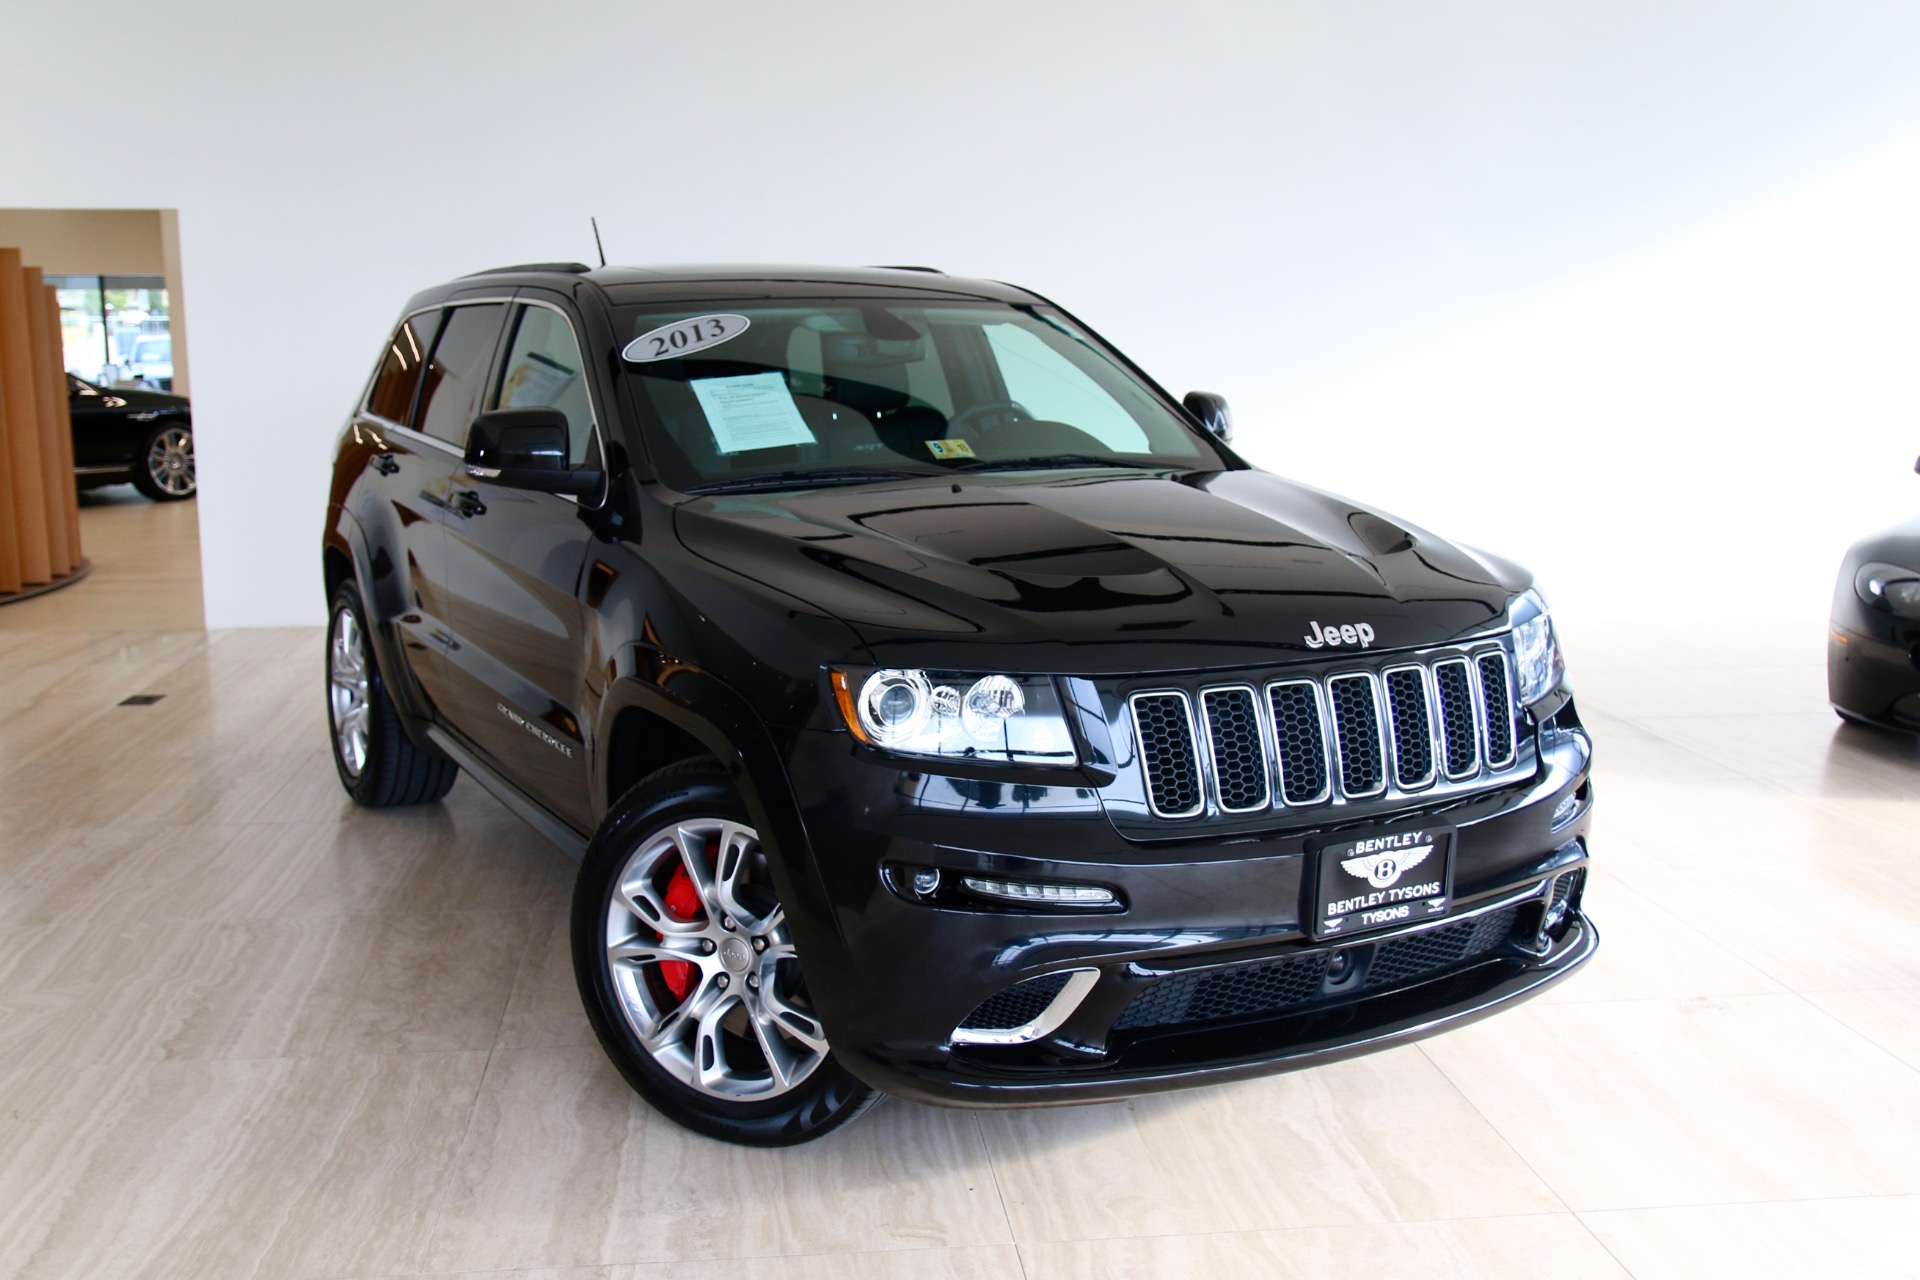 2013 jeep grand cherokee srt8 stock 7nc061977a for sale. Black Bedroom Furniture Sets. Home Design Ideas